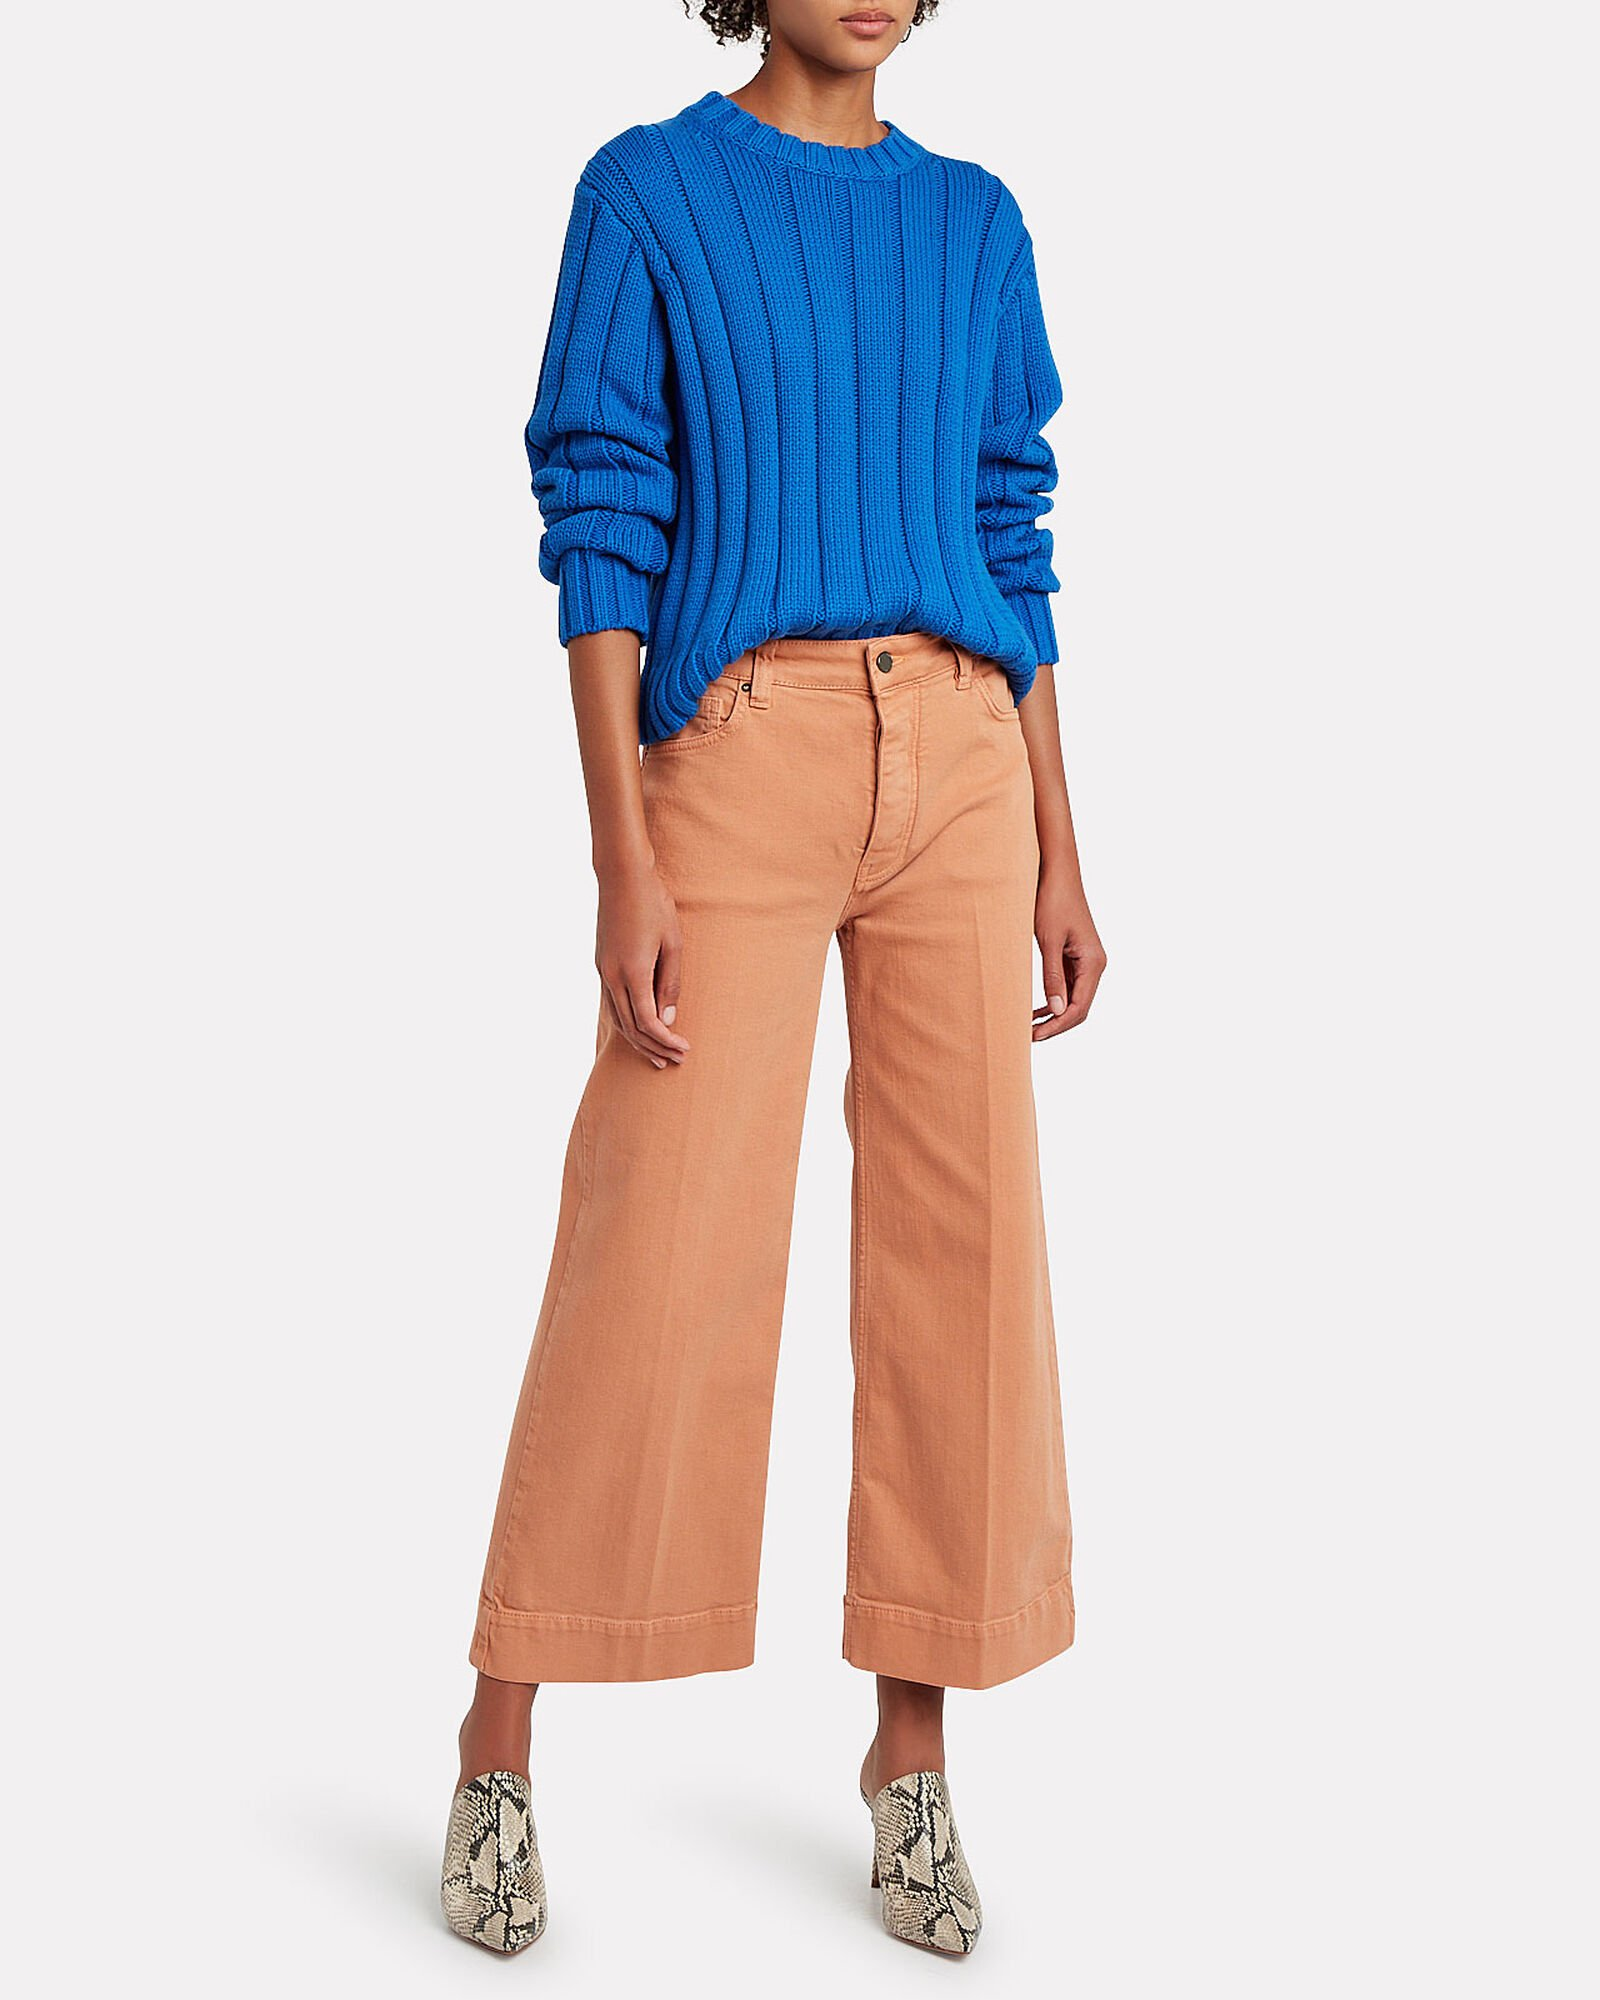 Iola Rib Knit Sweater, BLUE-MED, hi-res